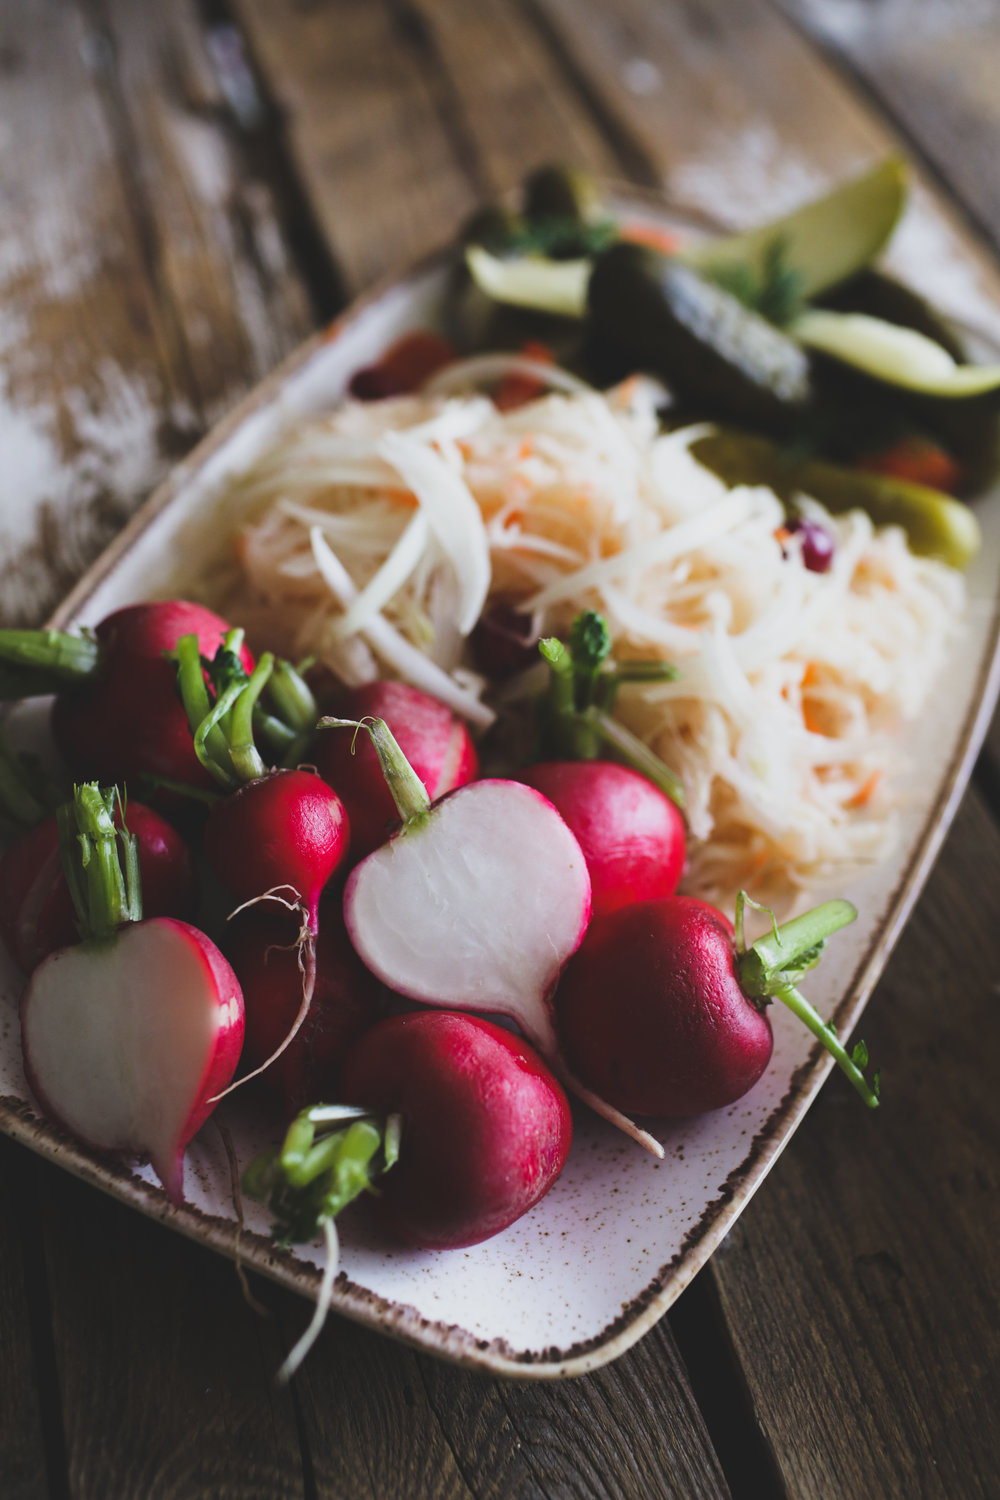 Bright pink orbs of radishes, alongside Russian-style sauerkraut, and pickles.